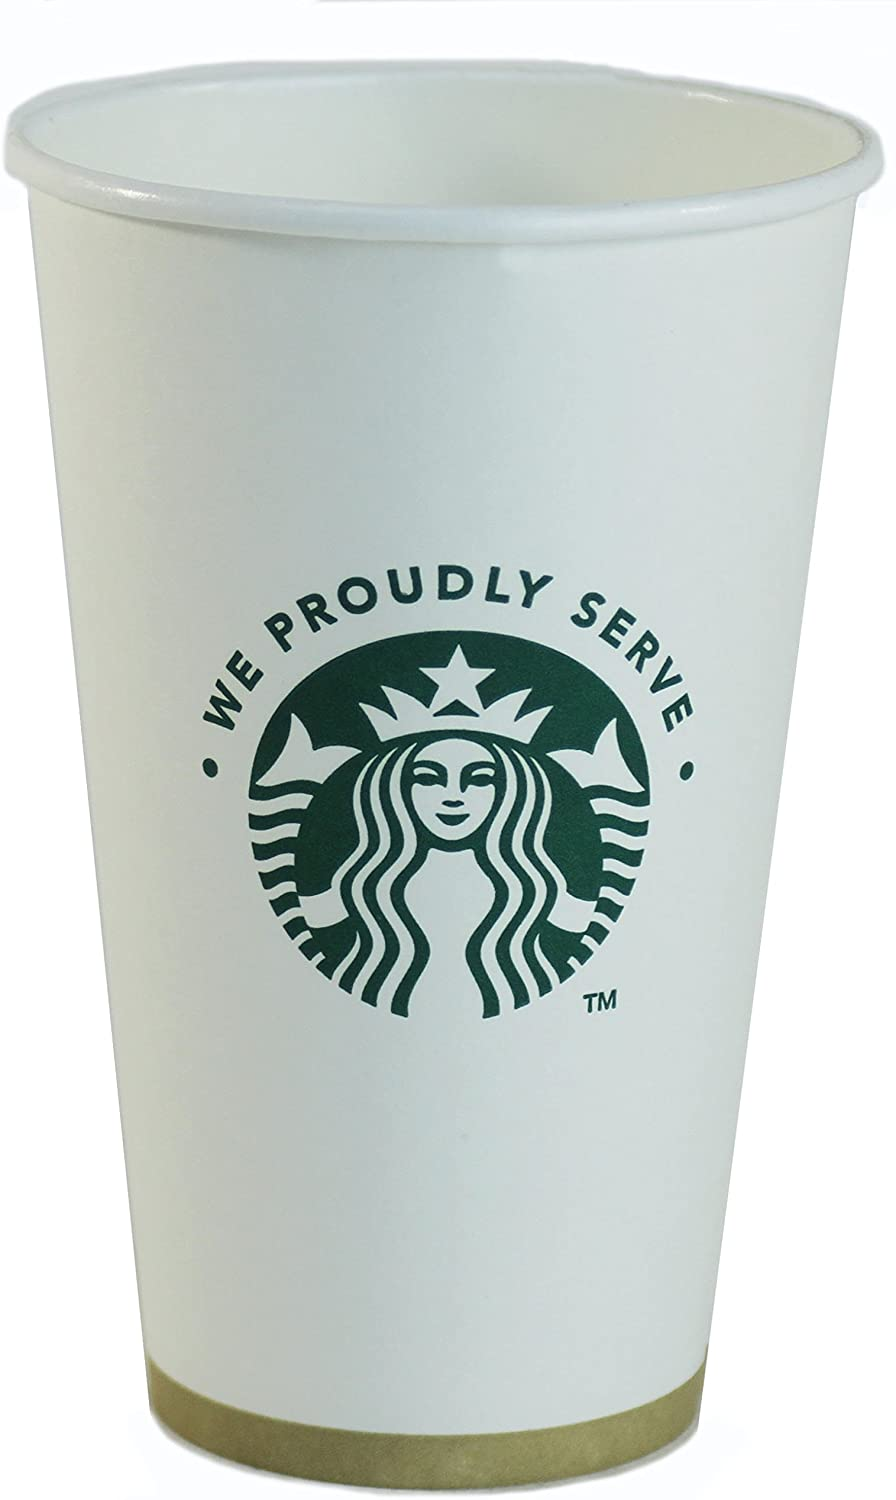 First Sip STARBUCKS disposable PAPER CUPS 1 SLEEVE OF 43 VENTI CUPS 20.5 oz